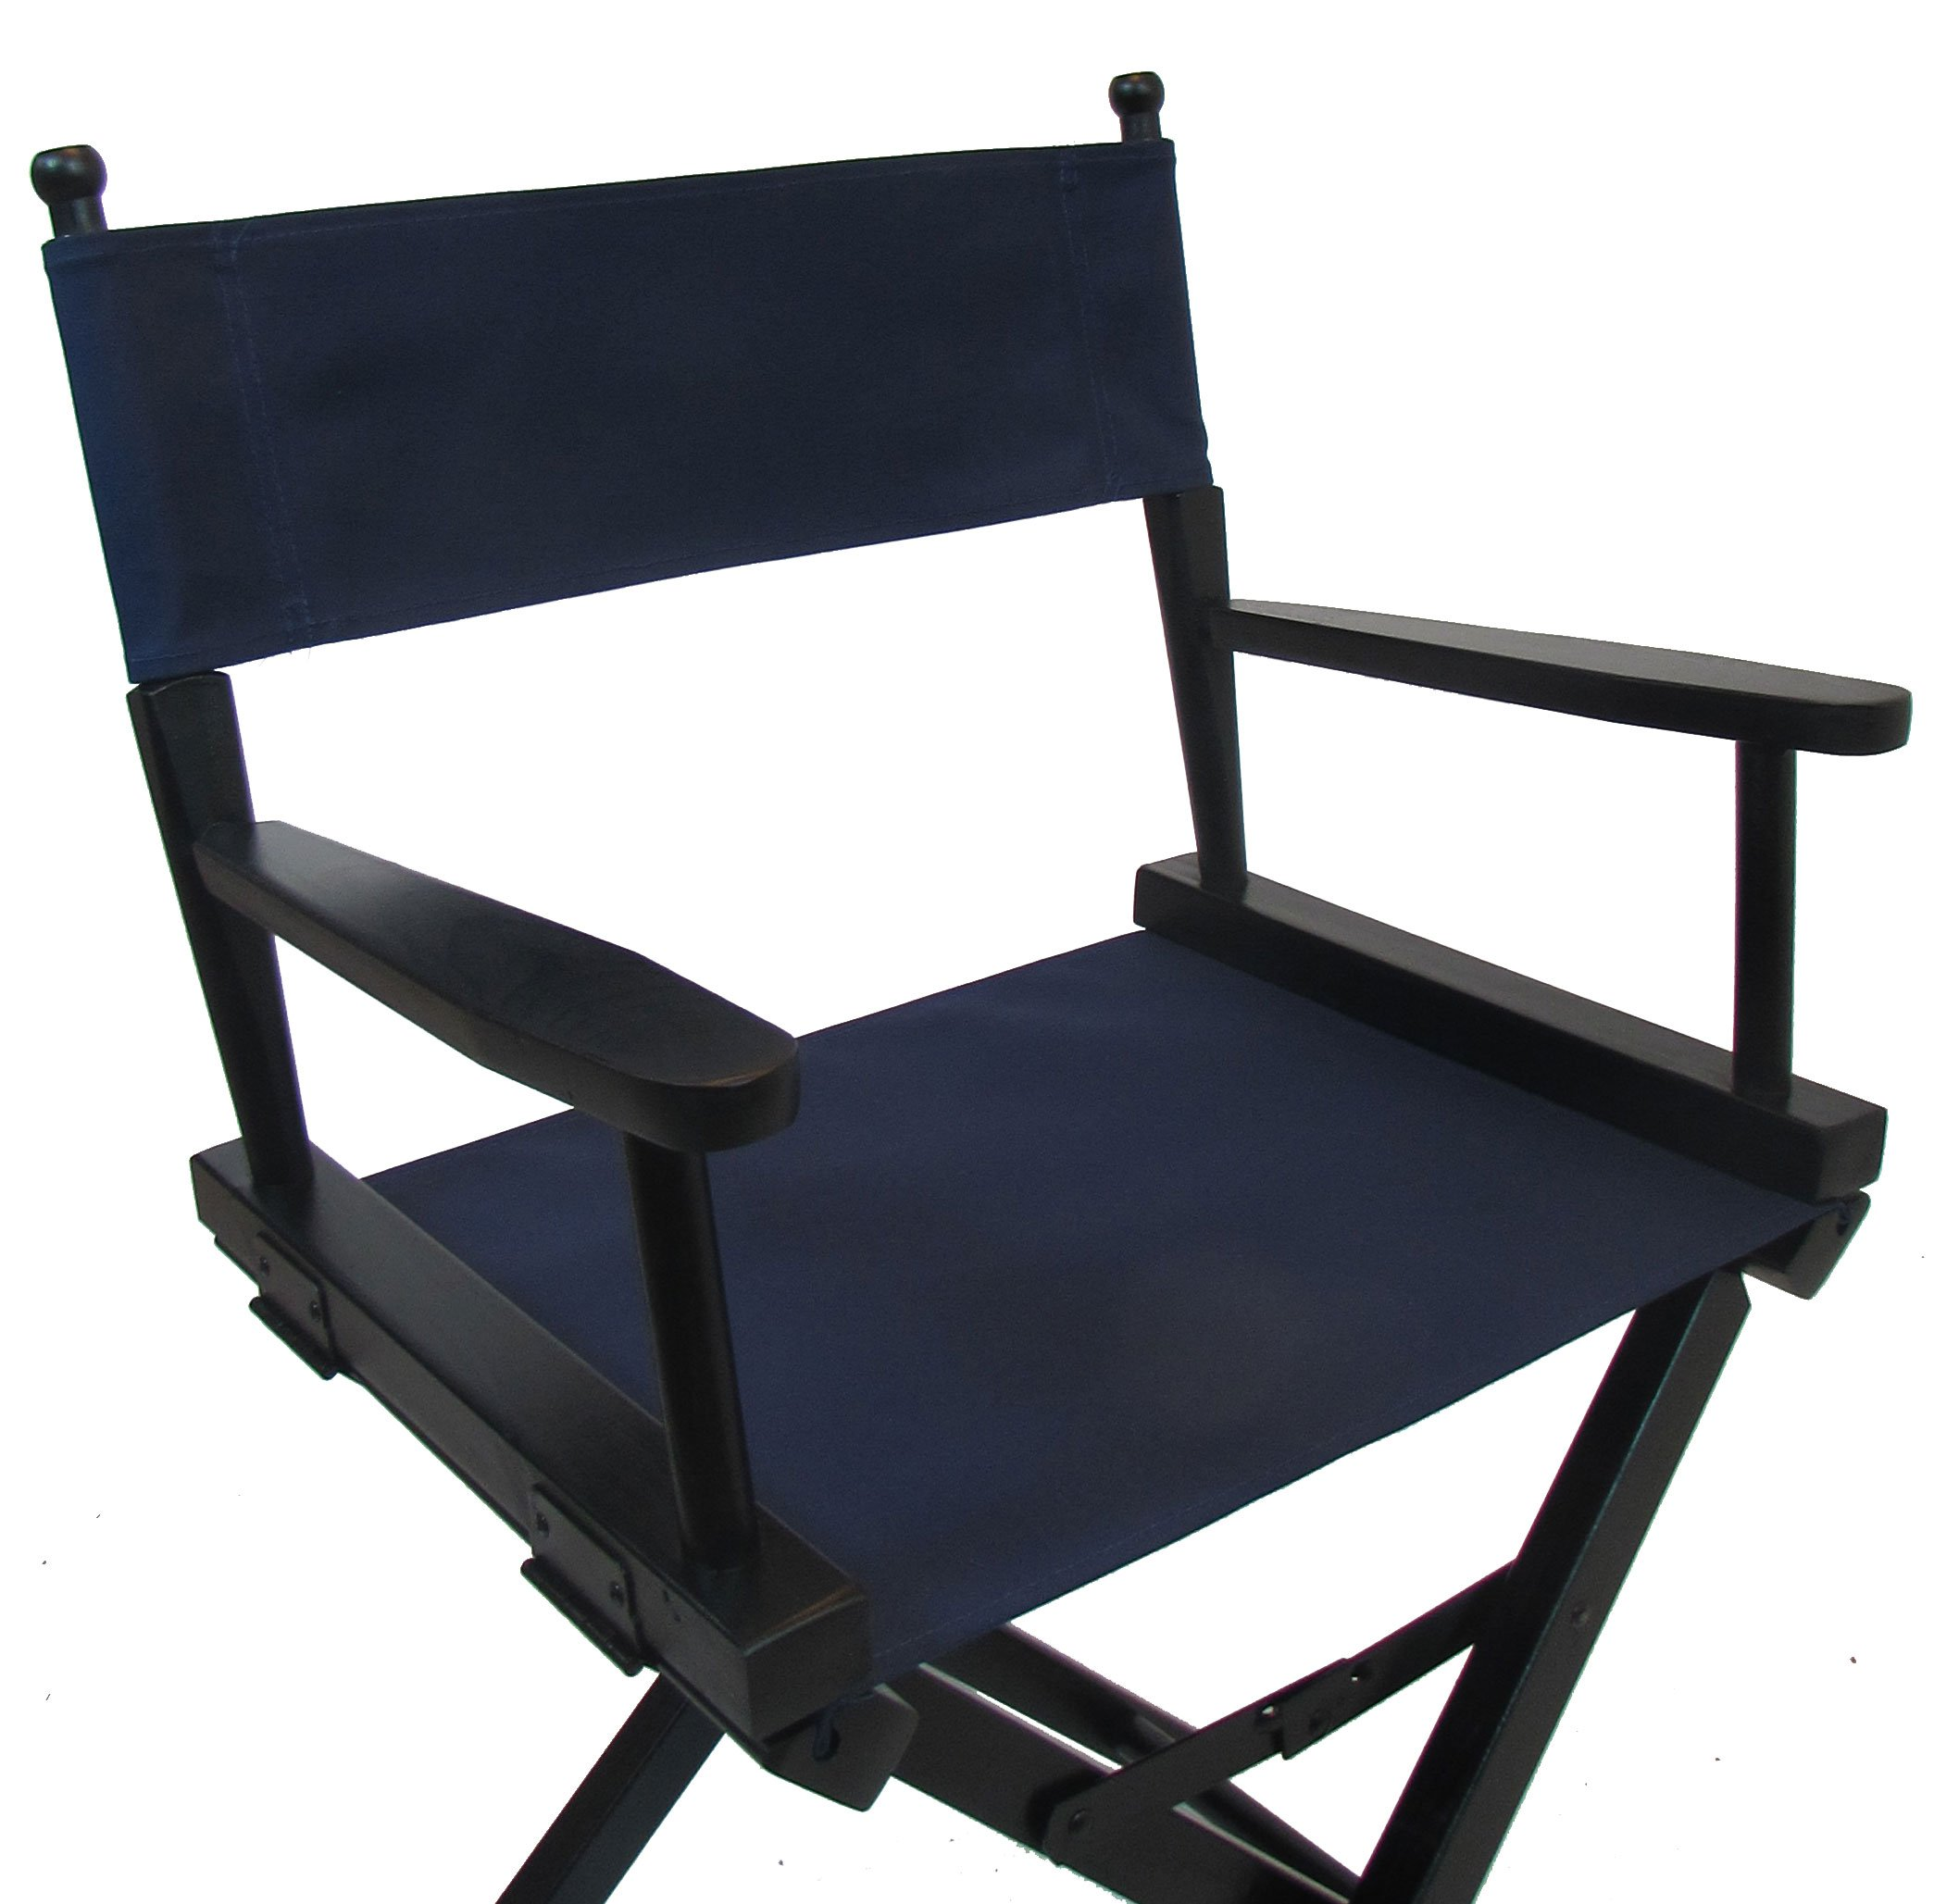 PERSONALIZED IMPRINTED Gold Medal Contemporary 30'' Bar Height Black Frame Directors Chair - Navy by TLT